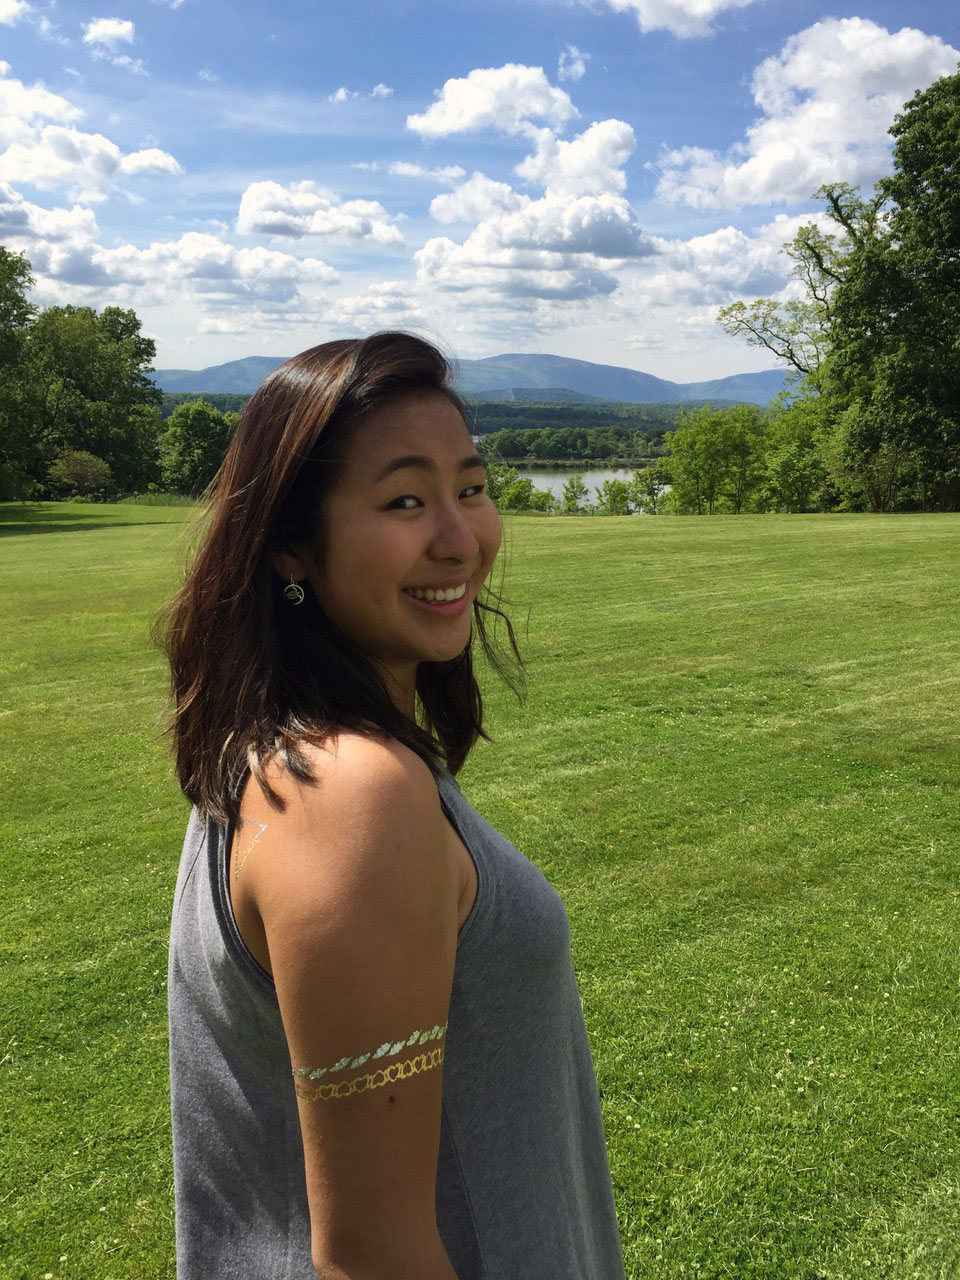 Bard College student Sara Xing Eisenberg at Blithewood Manor on the Bard Campus.